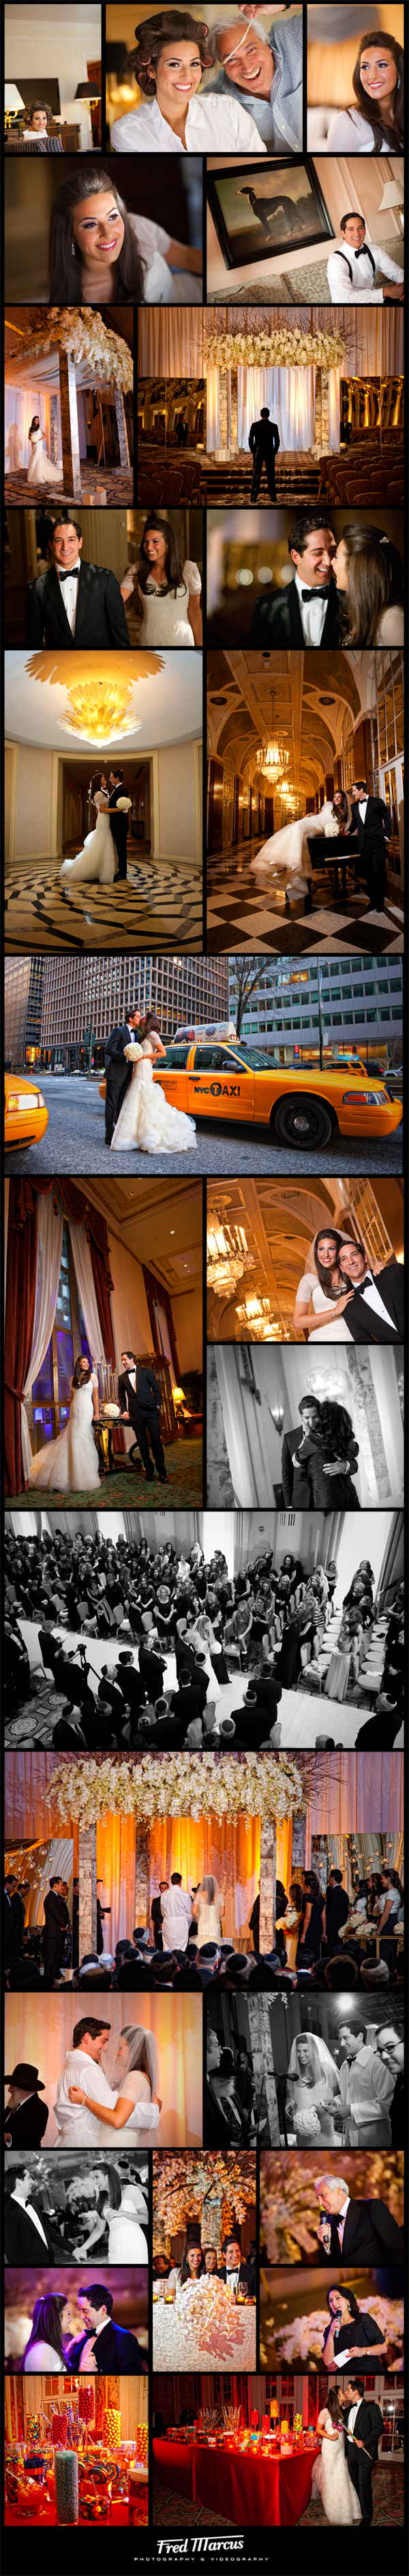 A Beautiful Wedding at the Waldorf Astoria